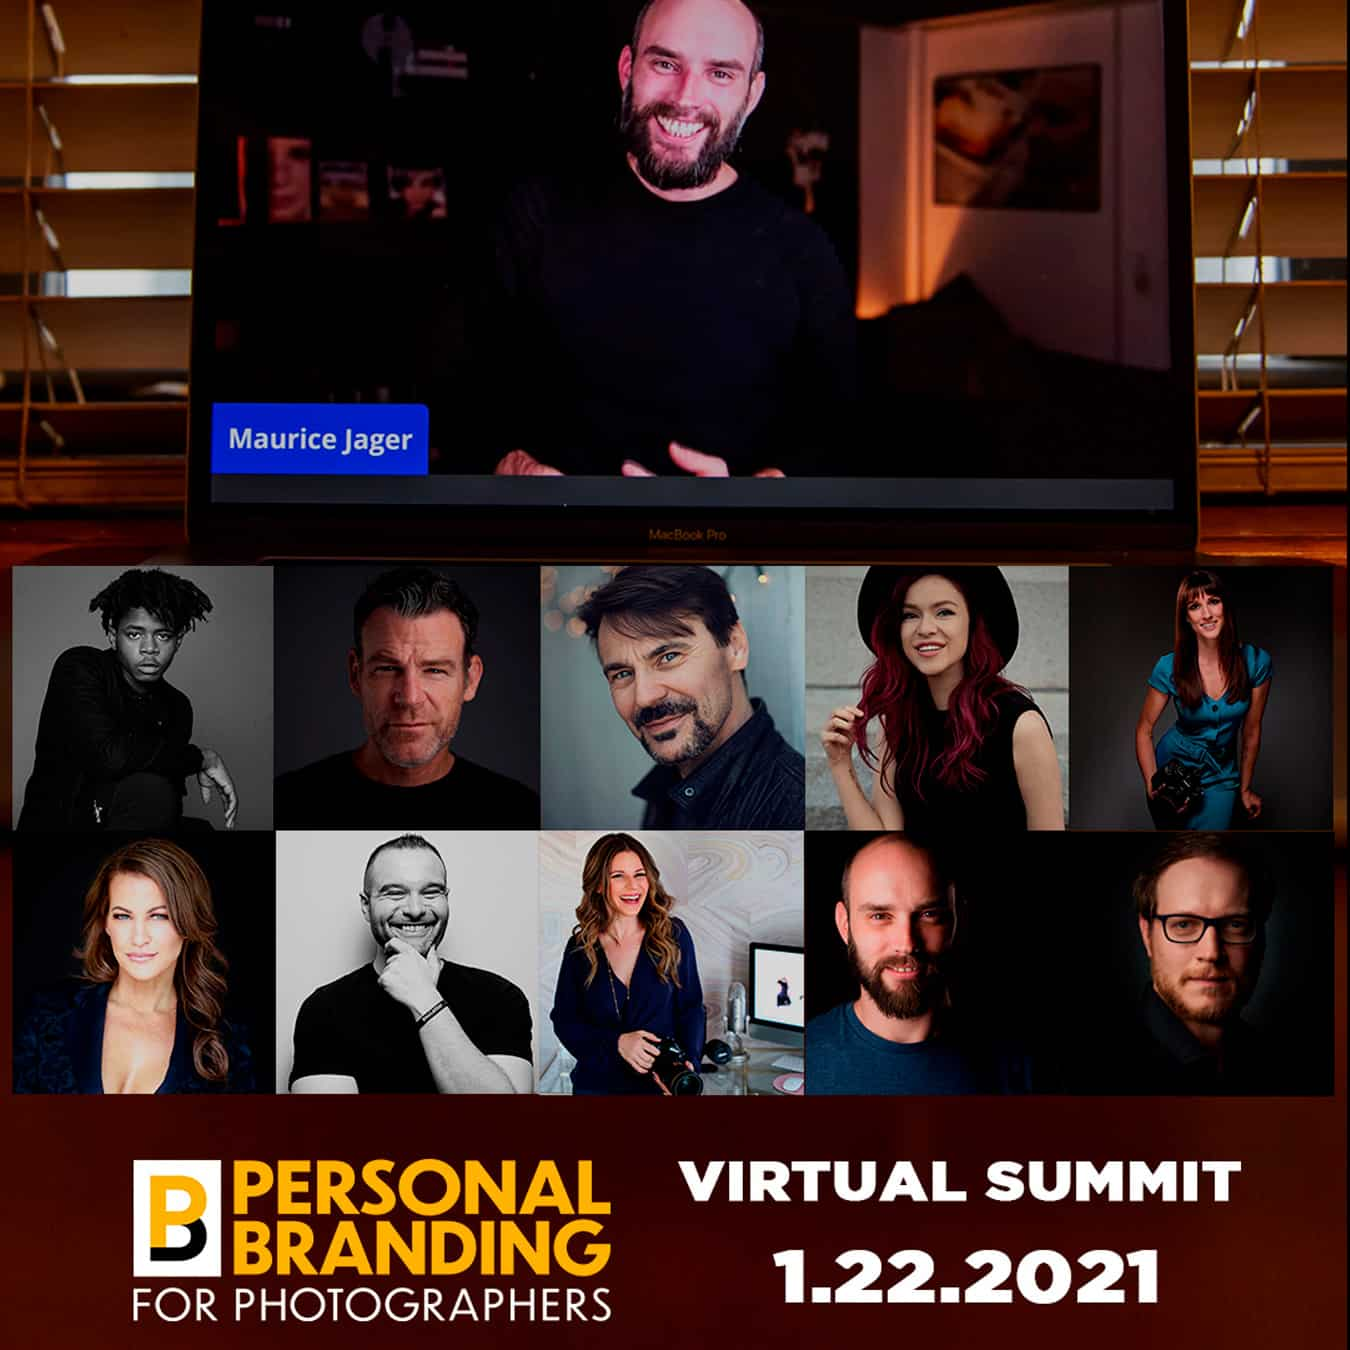 PERSONAL BRANDING FOR PHOTOGRAPHERS - VIRTUAL SUMMIT JANUARY 2021